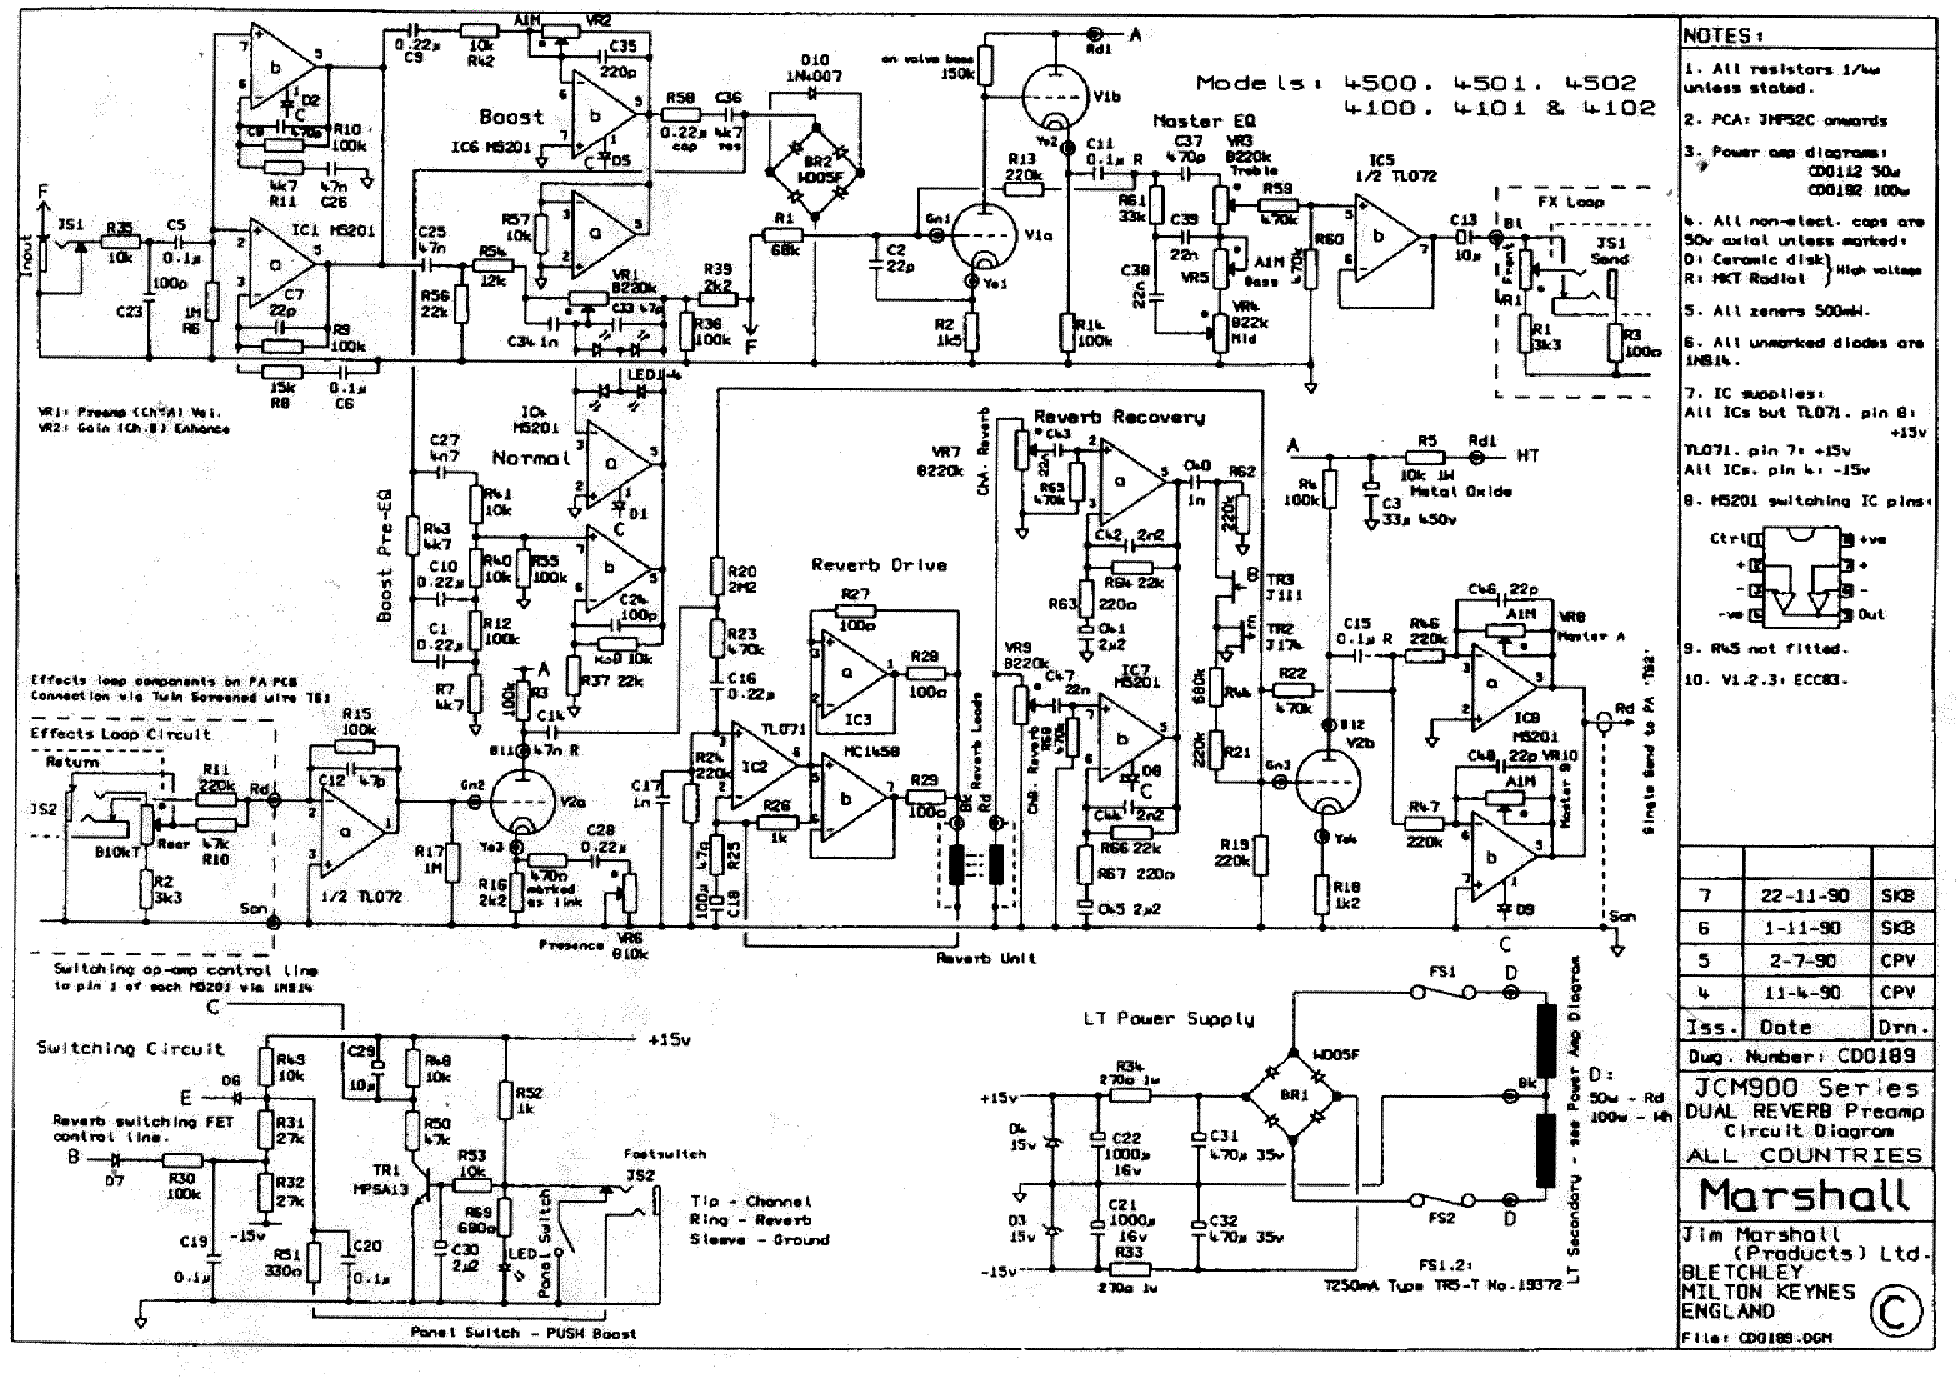 marshall jcm900 dual reverb preamp sch service manual download  schematics  eeprom  repair info